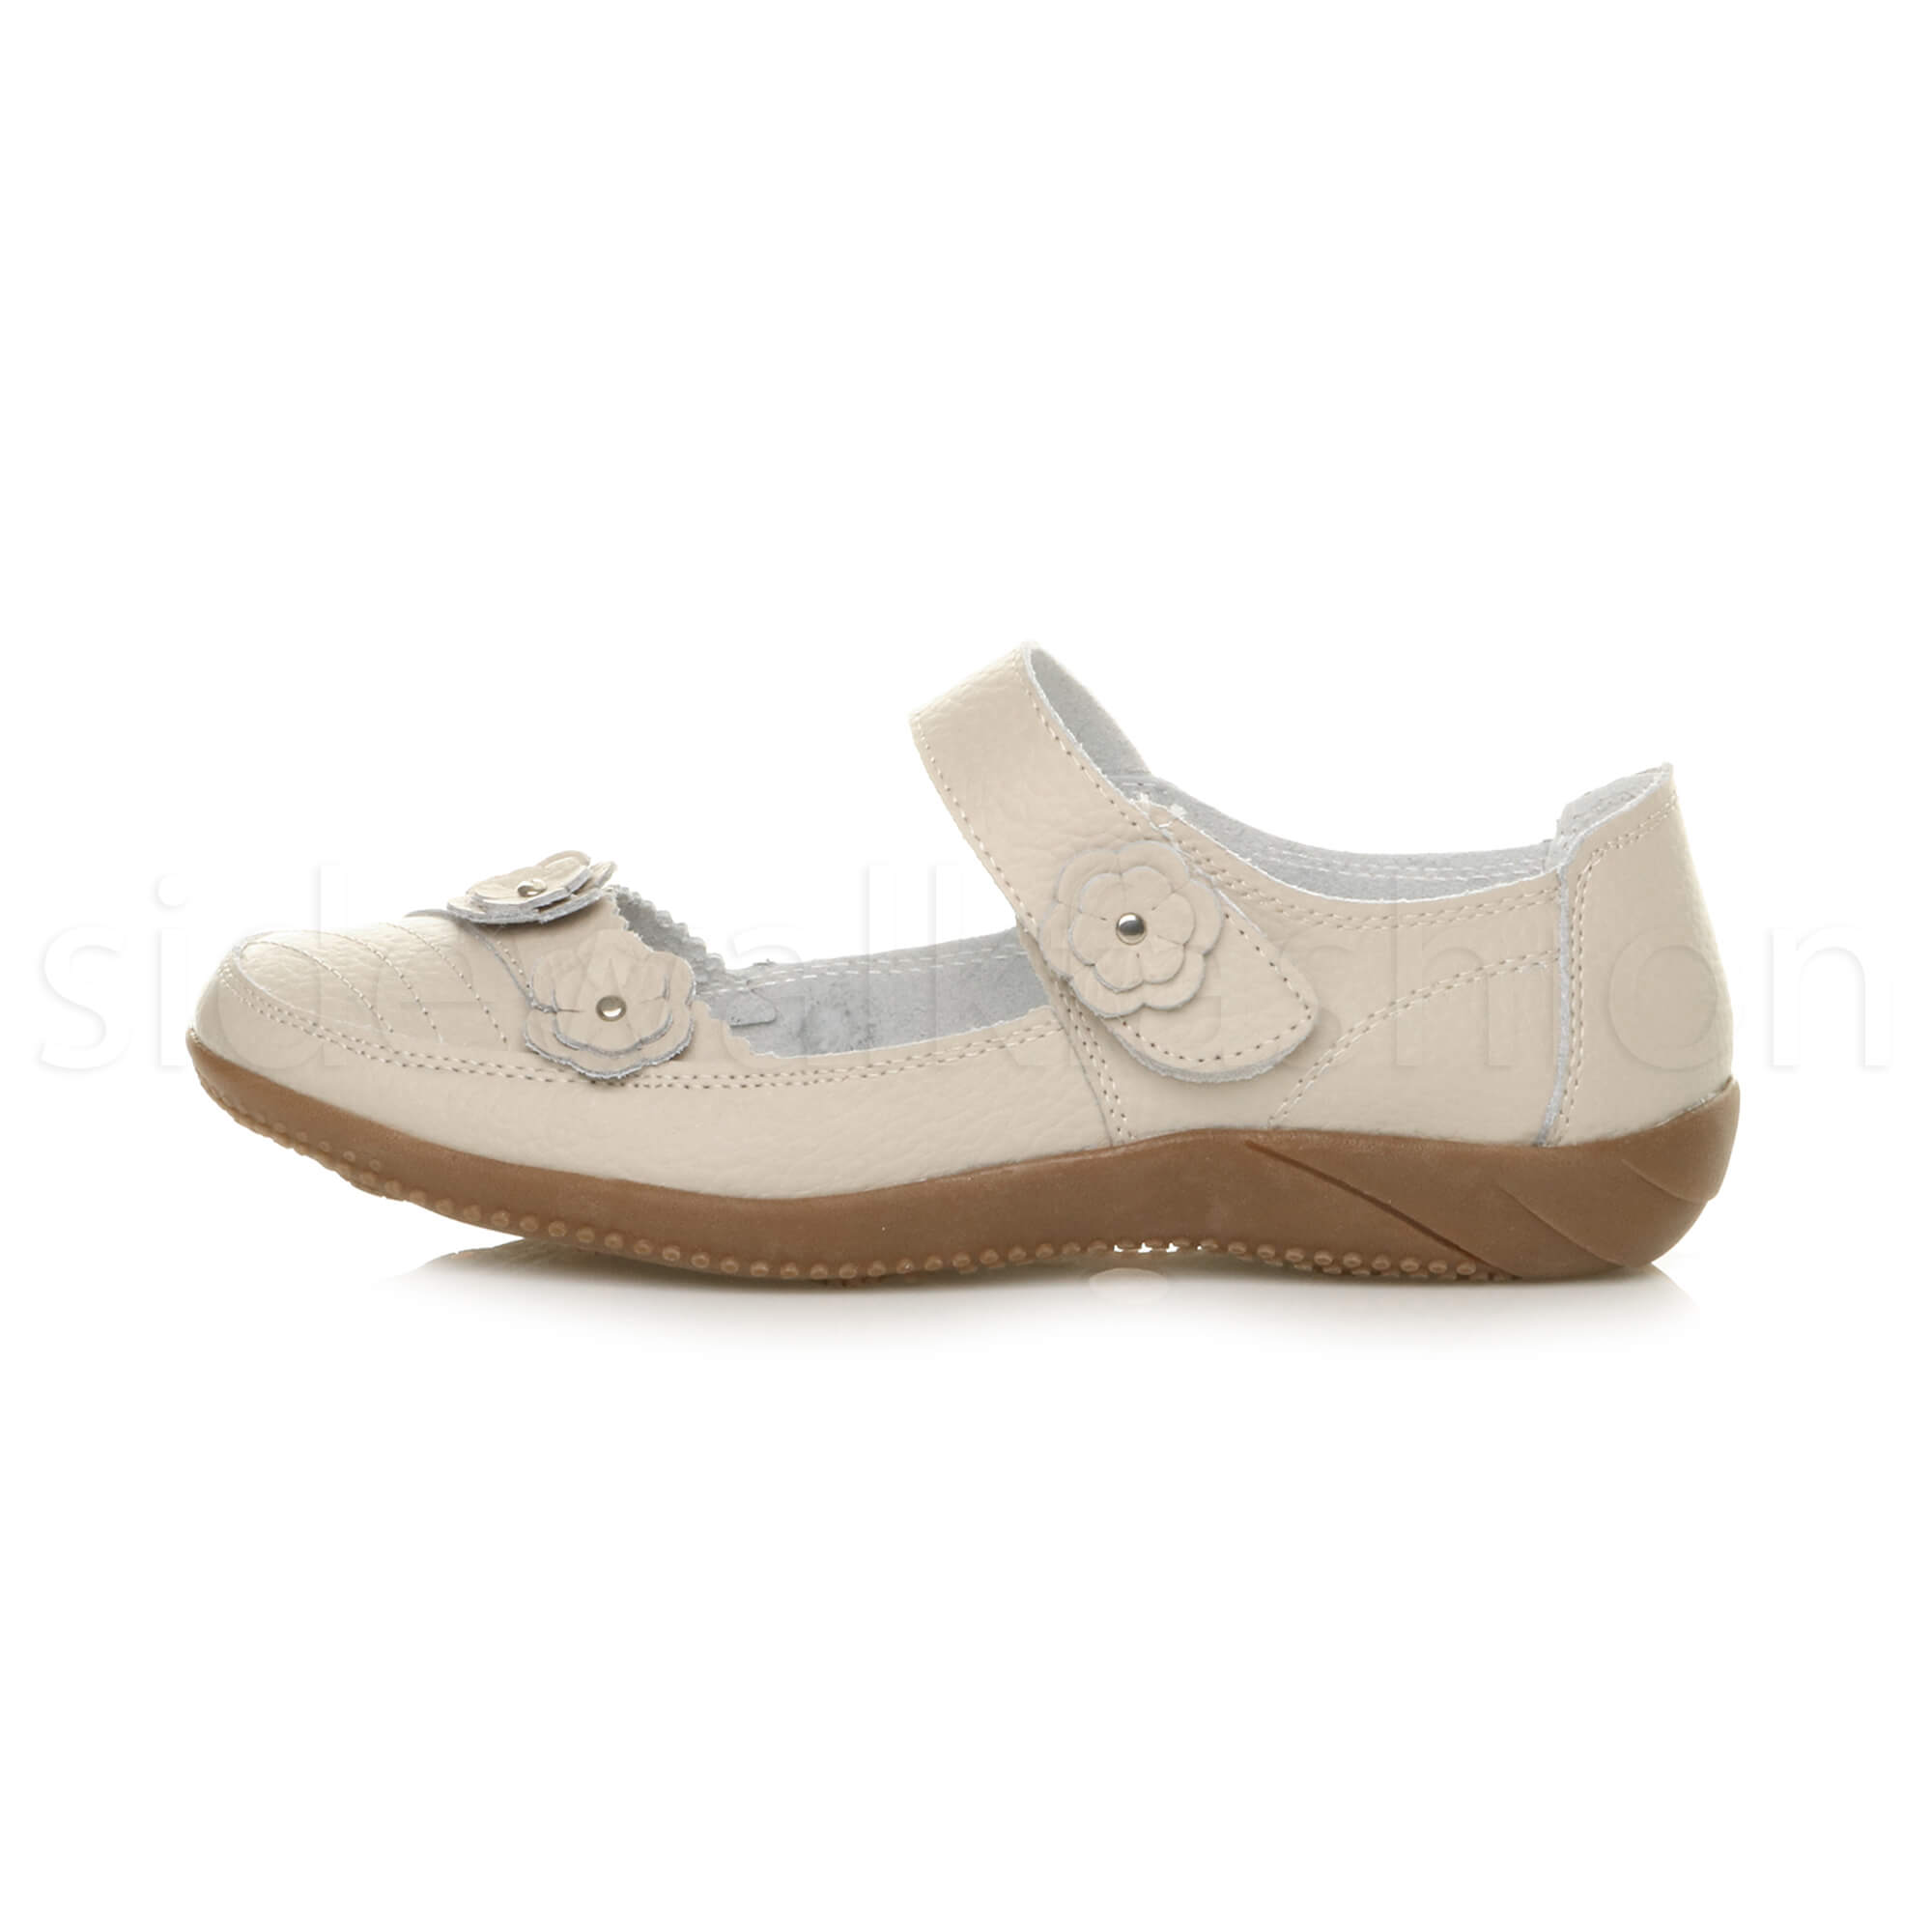 Womens-ladies-leather-comfort-walking-casual-sandals-mary-jane-strap-shoes-size thumbnail 38